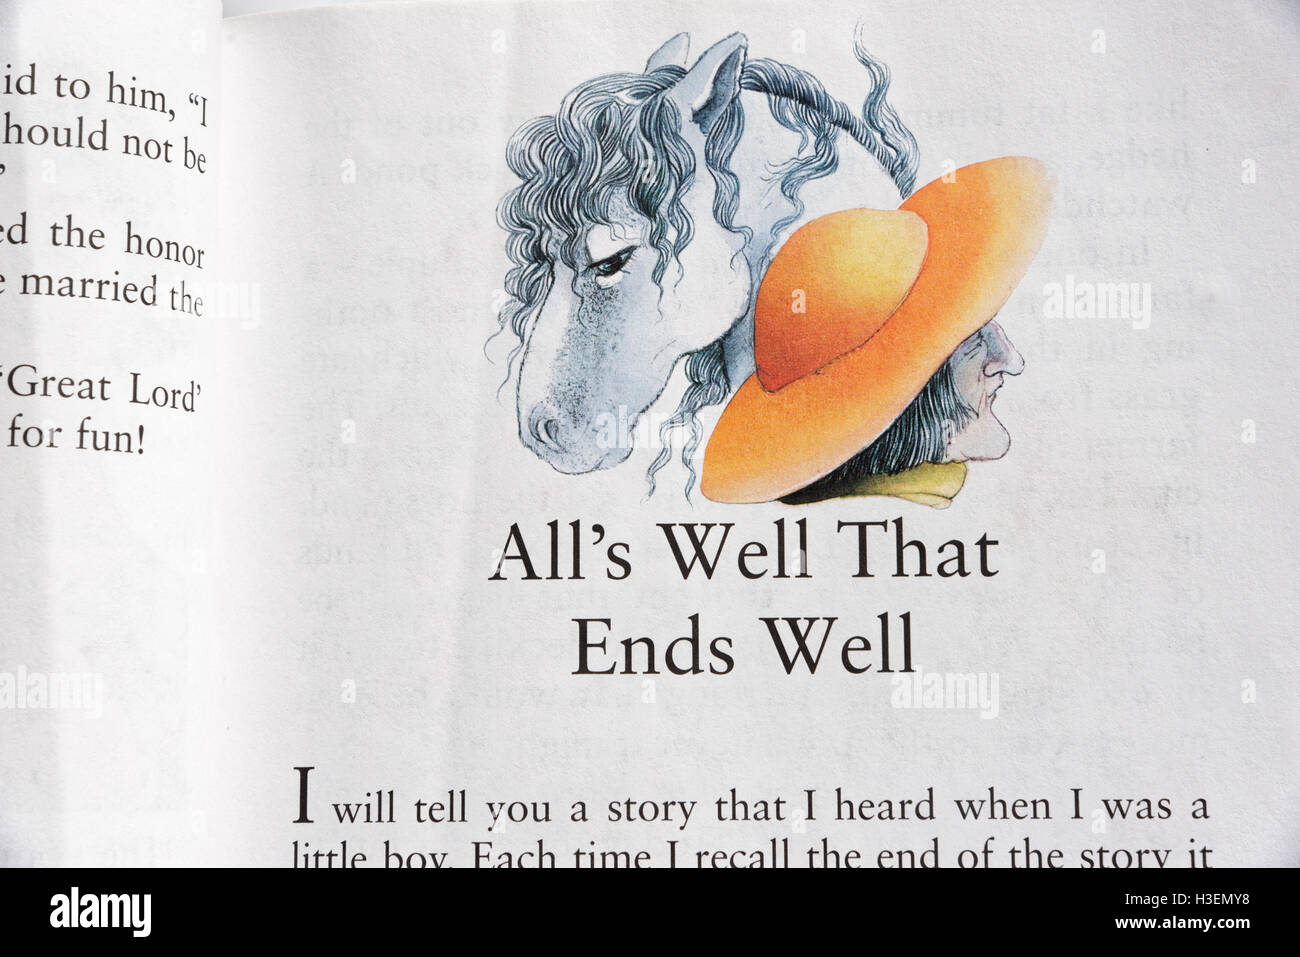 All's Well That Ends Well in a book of Fairy Tales - Stock Image